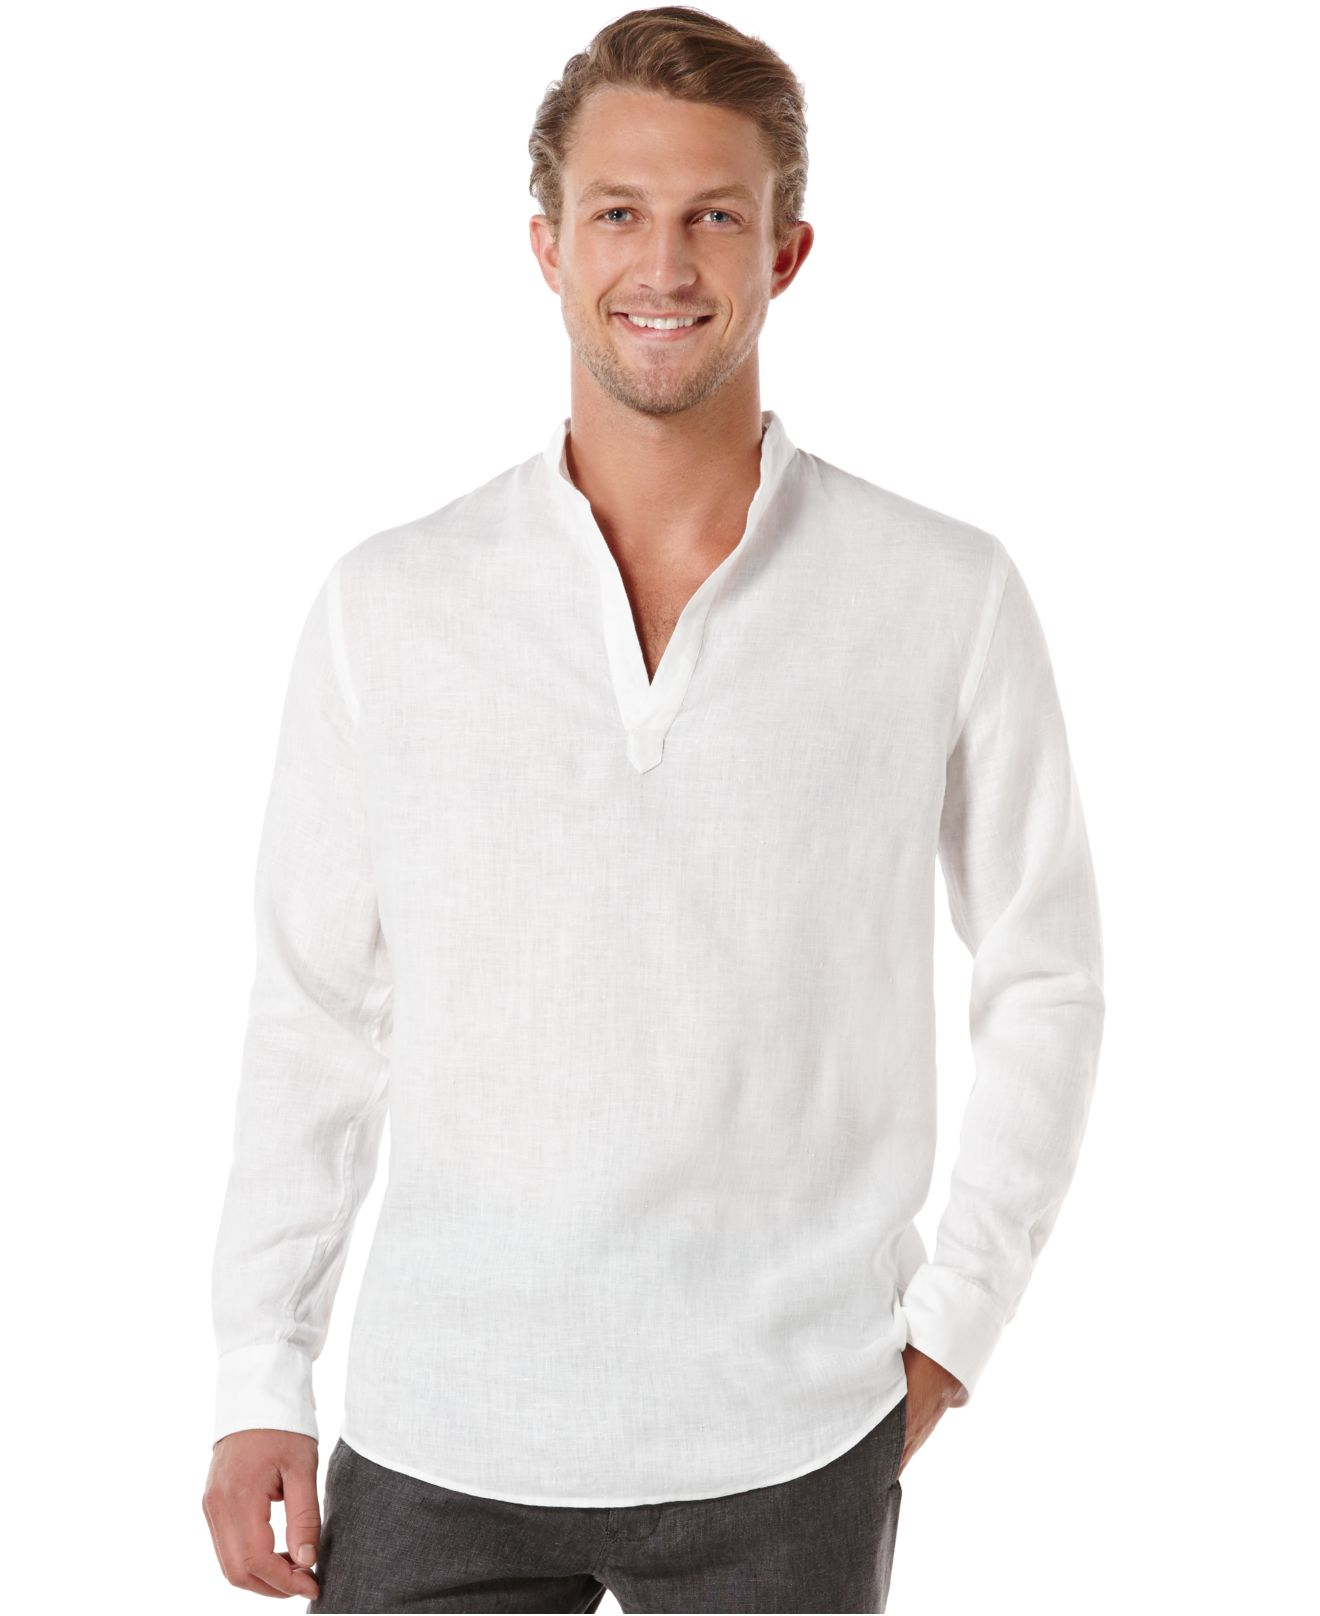 lyst perry ellis solid linen popover shirt in white for men